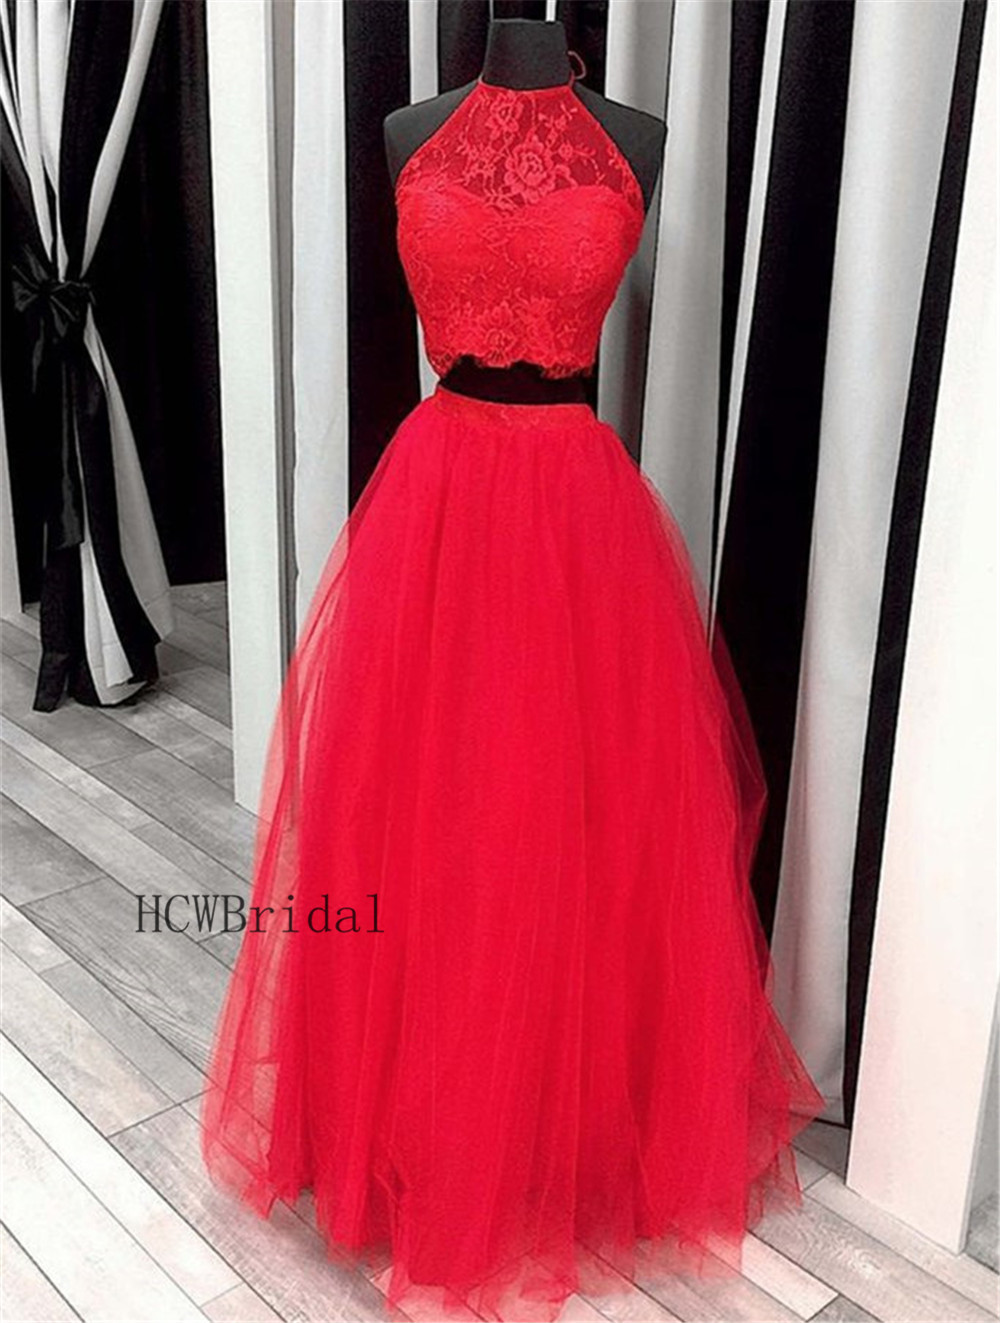 Red 2 Piece Prom Dresses Halter Backless A Line Lace Tulle Charming Evening Gown Long 2019 High Quality Women Party Dress Cheap